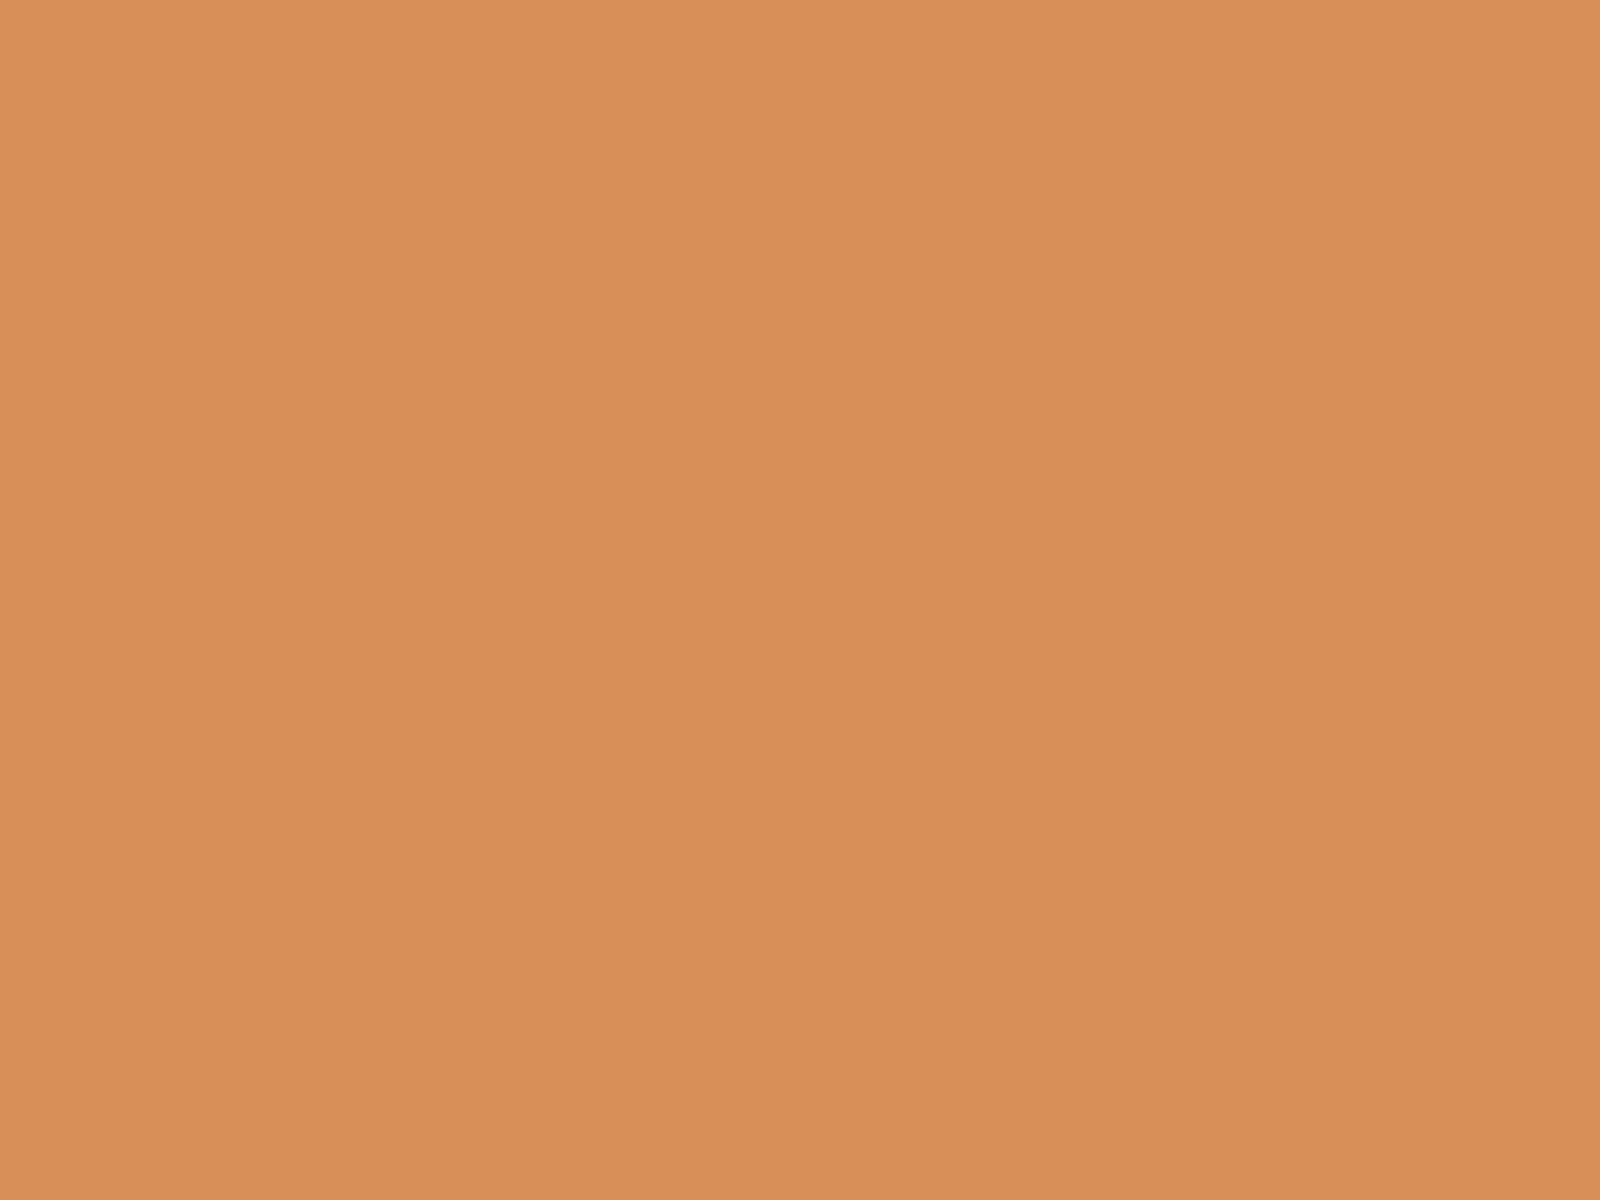 1600x1200 Persian Orange Solid Color Background